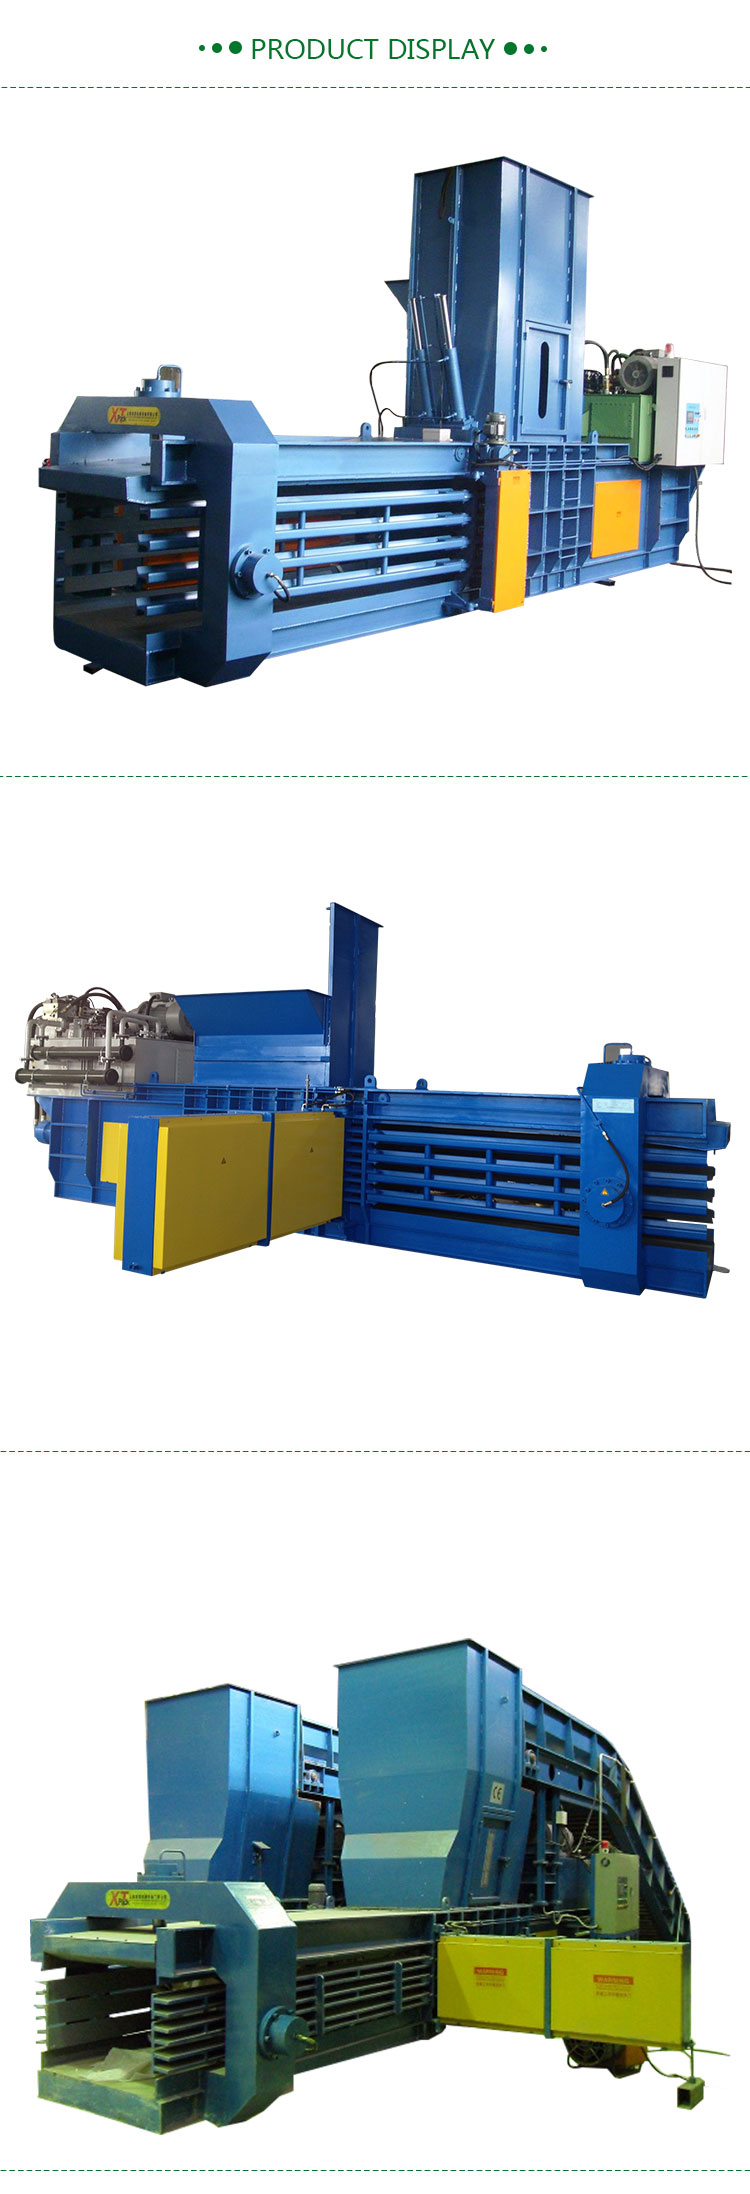 Waste Paper Baling Press Compactor